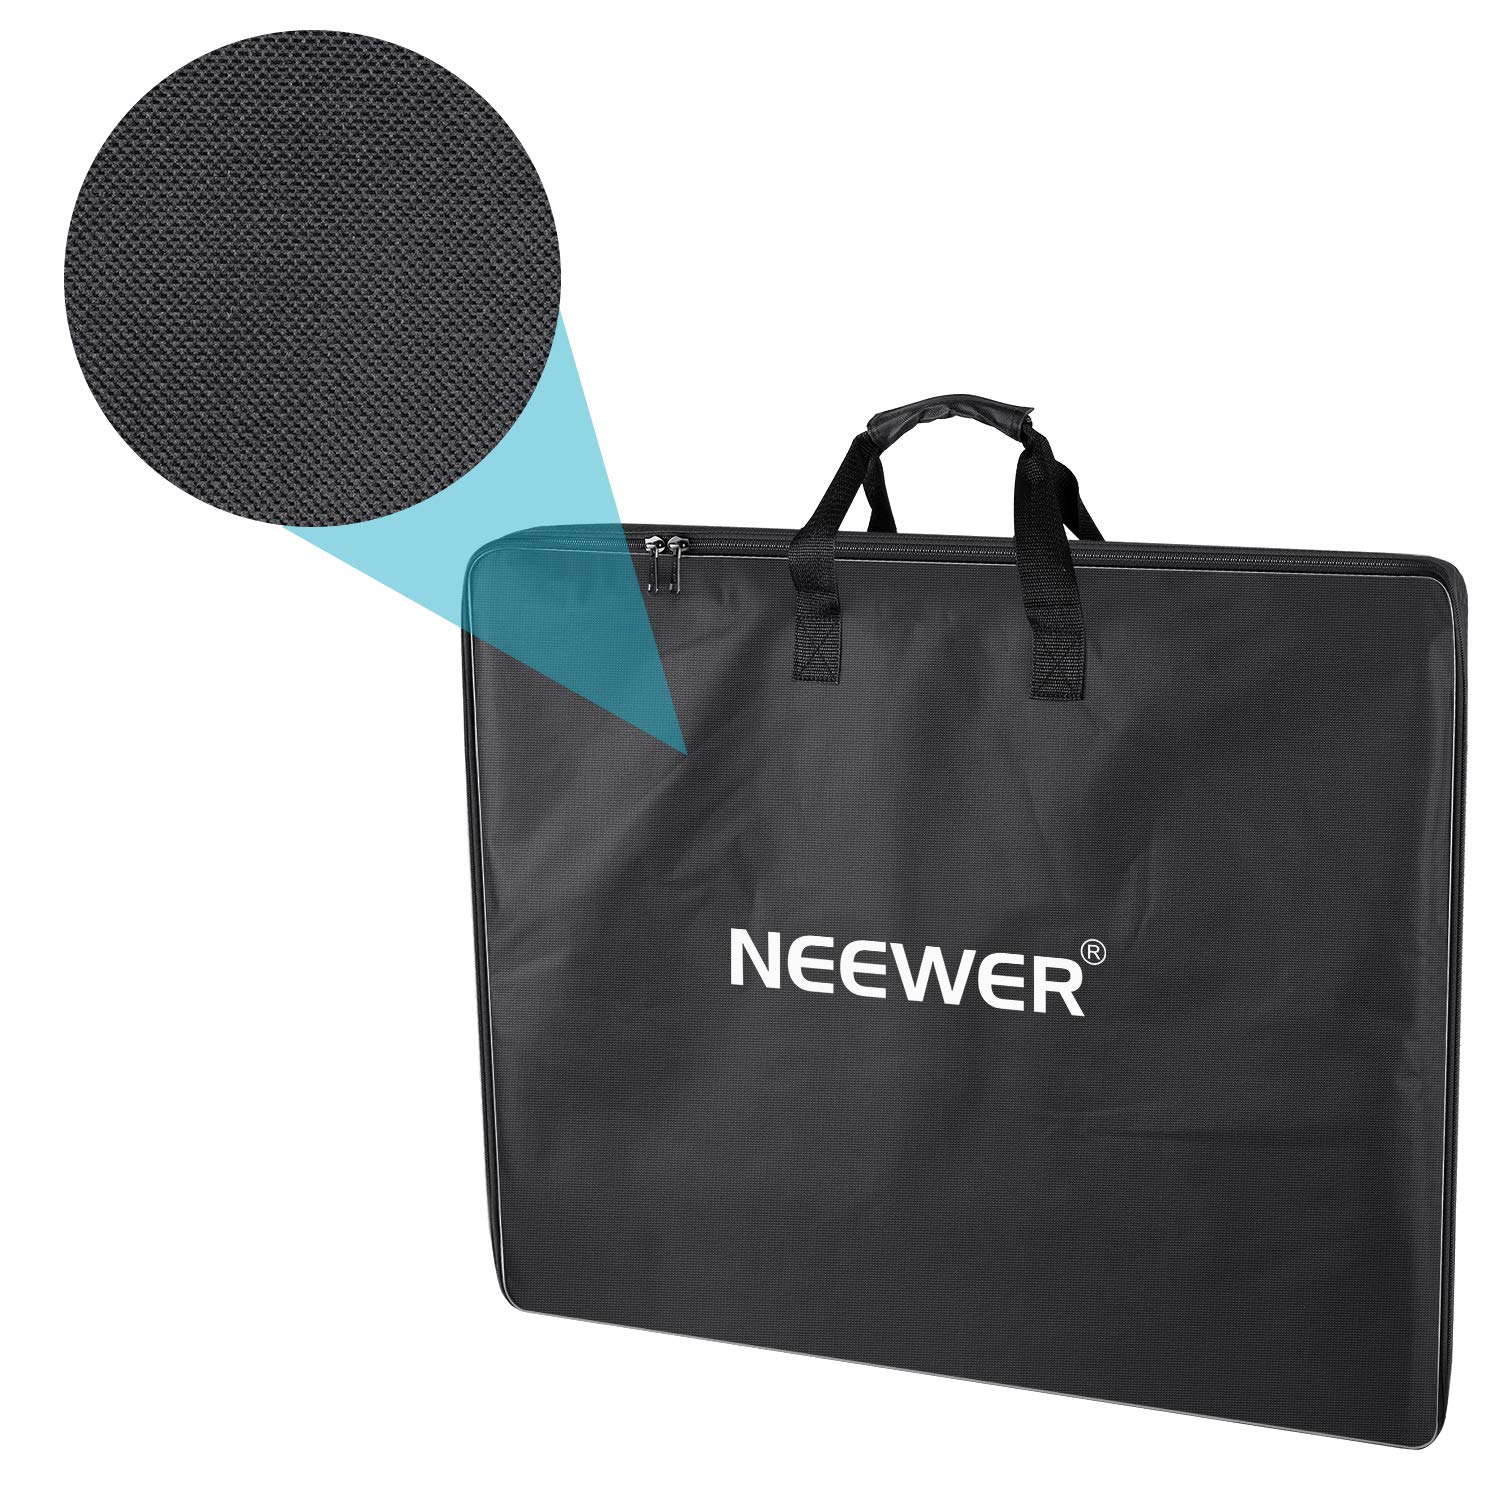 Neewer Enlarged Carrying Bag for 18 inches Ring Light, Light Stand, Accessories - 29.5x23.6 inches/75x60 Centimeters Protective Case, Durable Nylon,Light Weight (Black) by Neewer (Image #7)